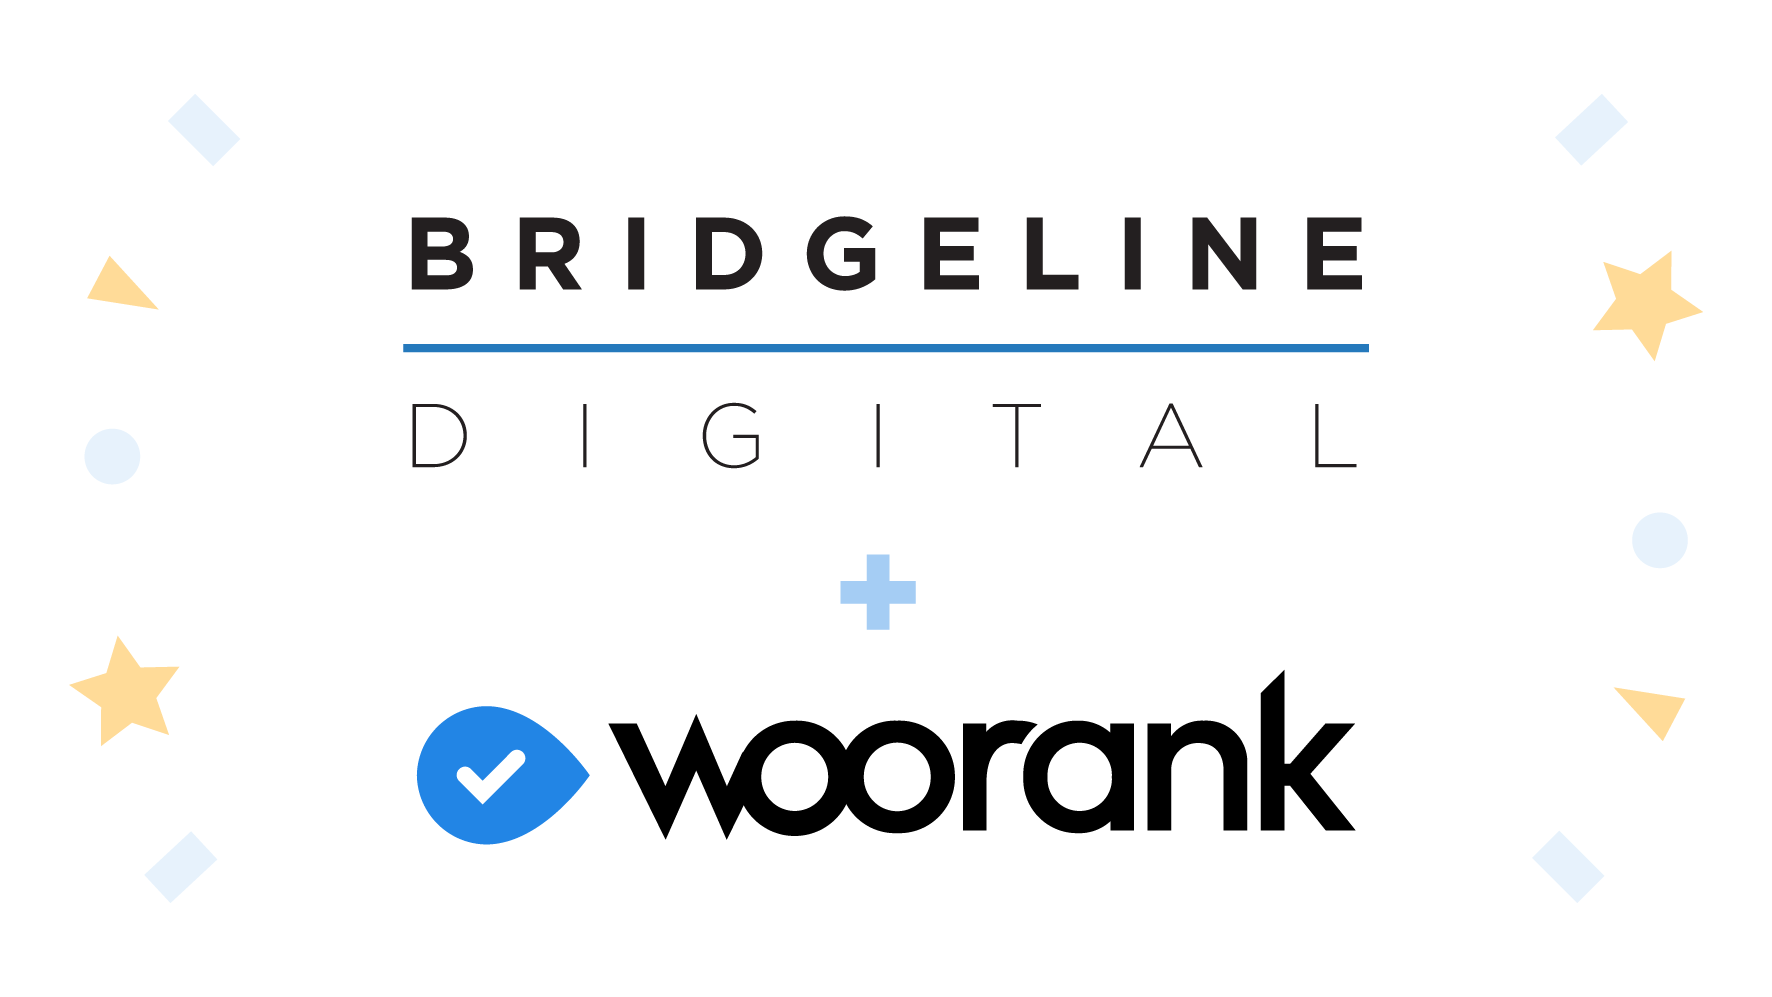 WooRank joins Bridgeline Digital!